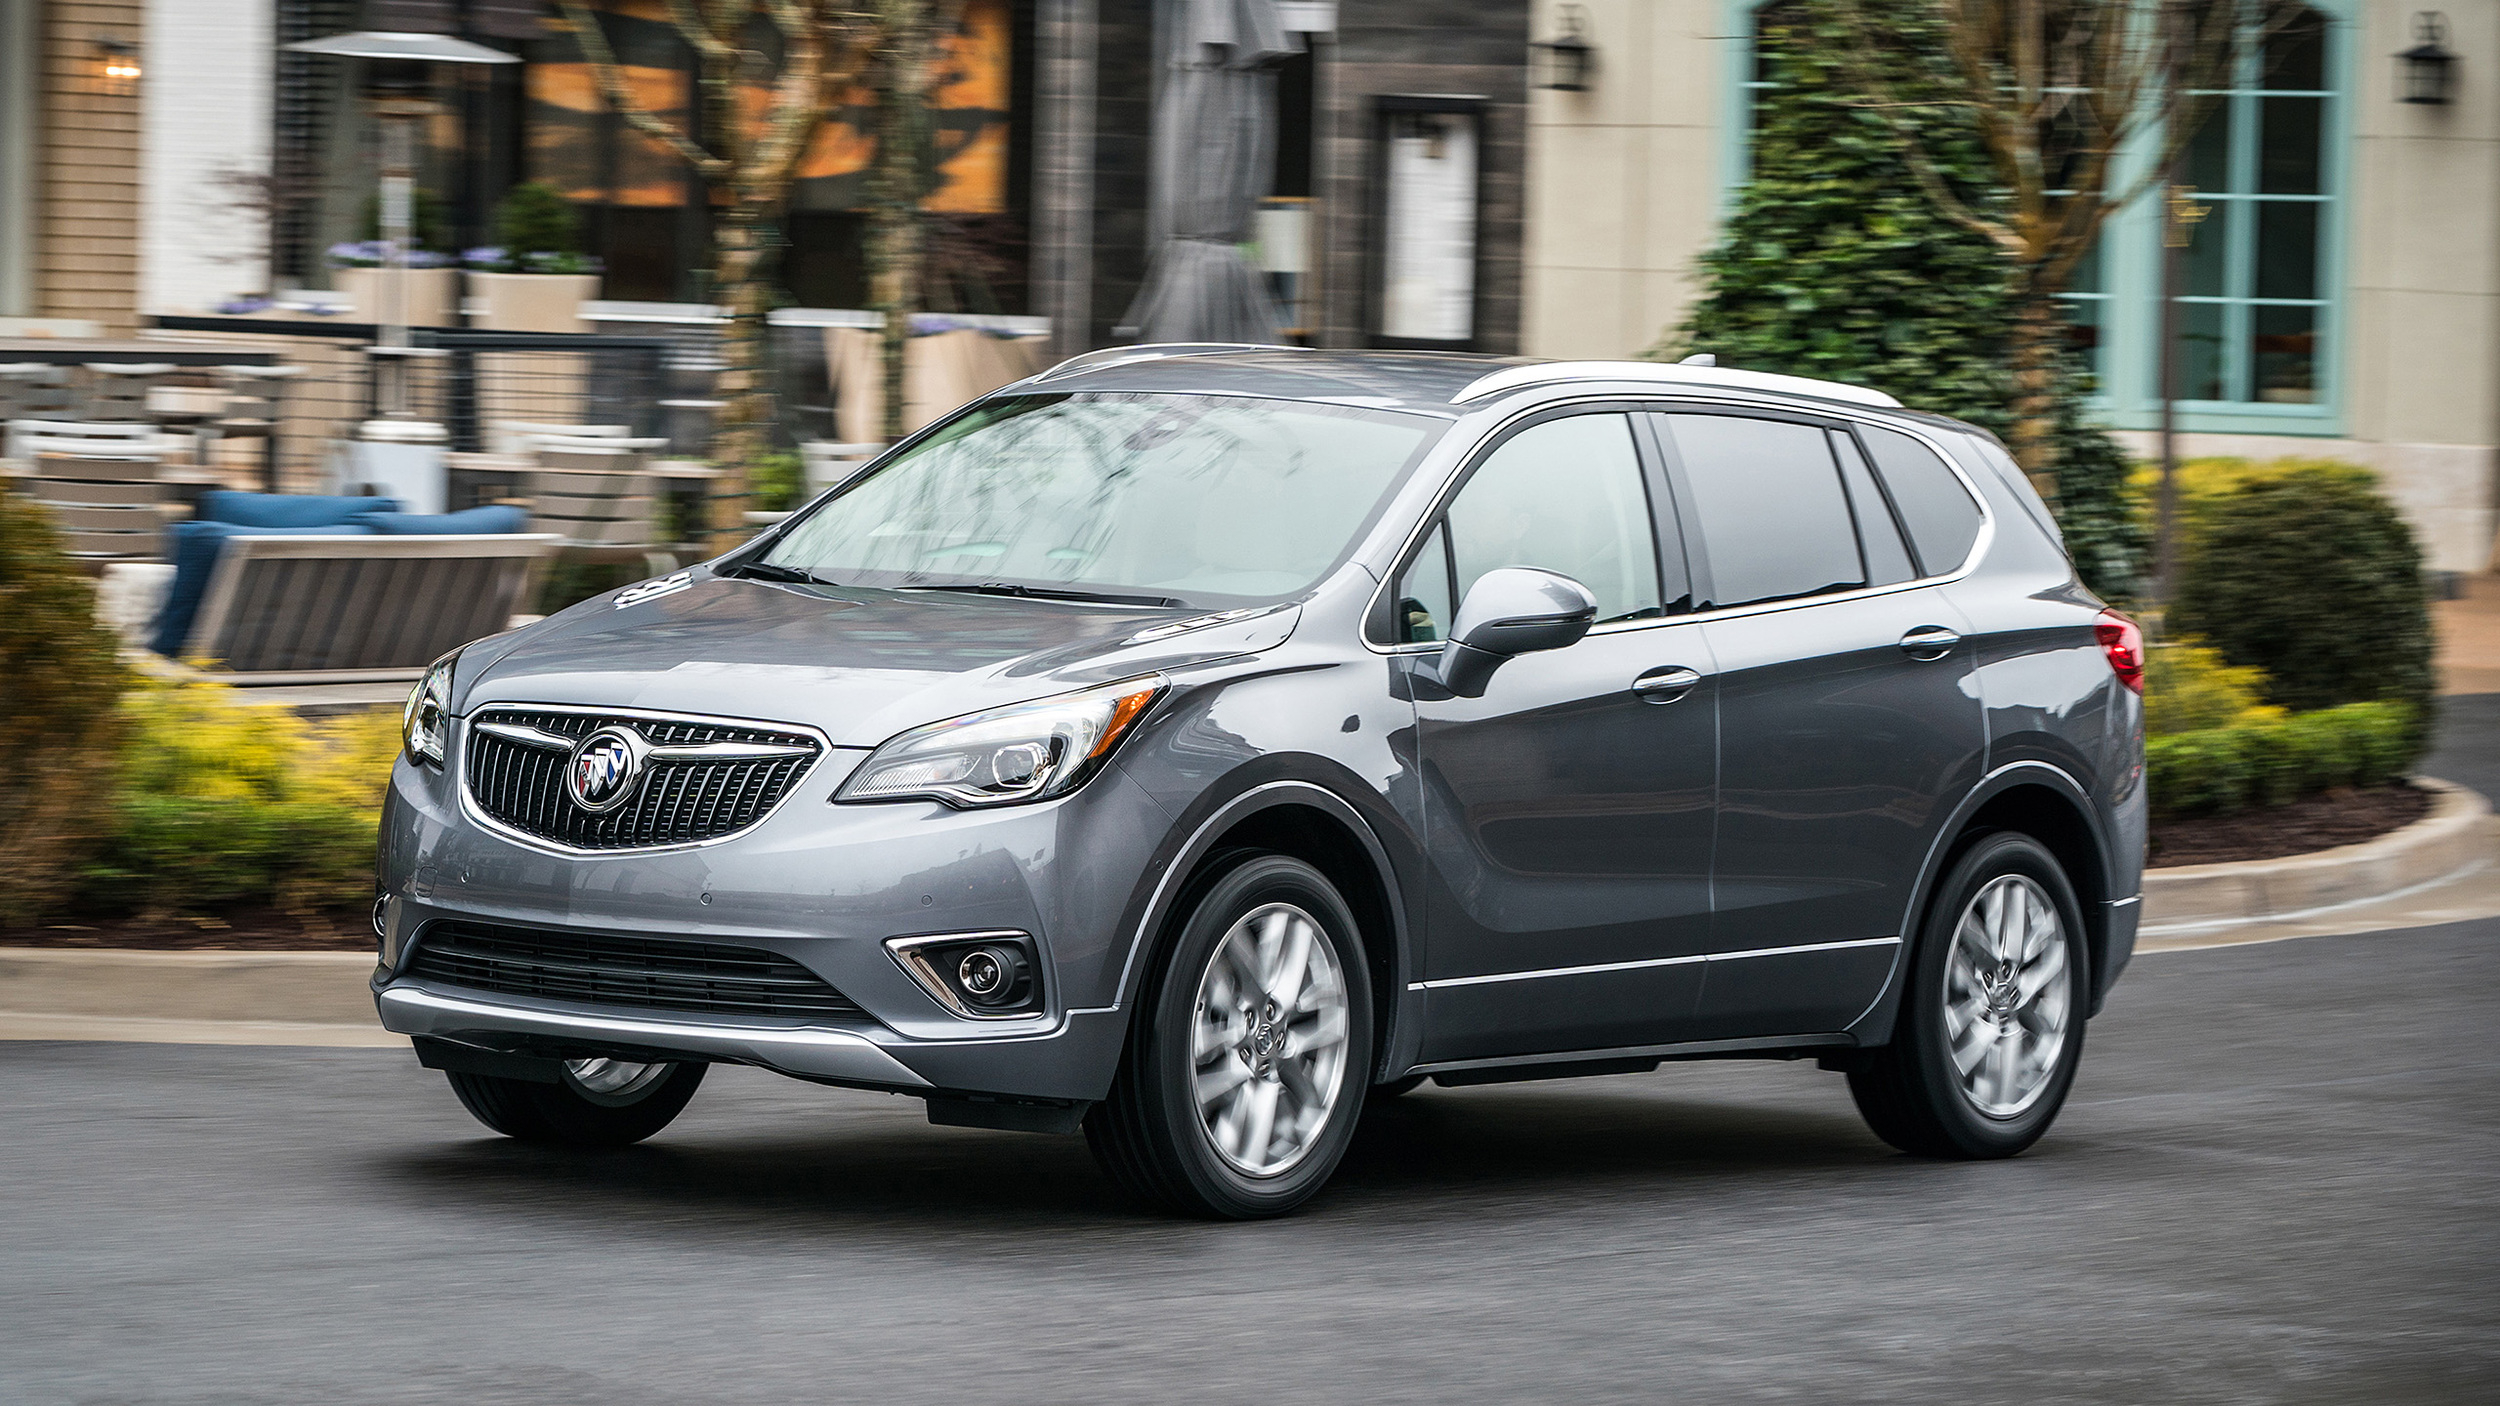 2019 Buick Envision Crossover Road Test Review | Autoblog 2022 Buick Envision Cargo Space, Curb Weight, Cost